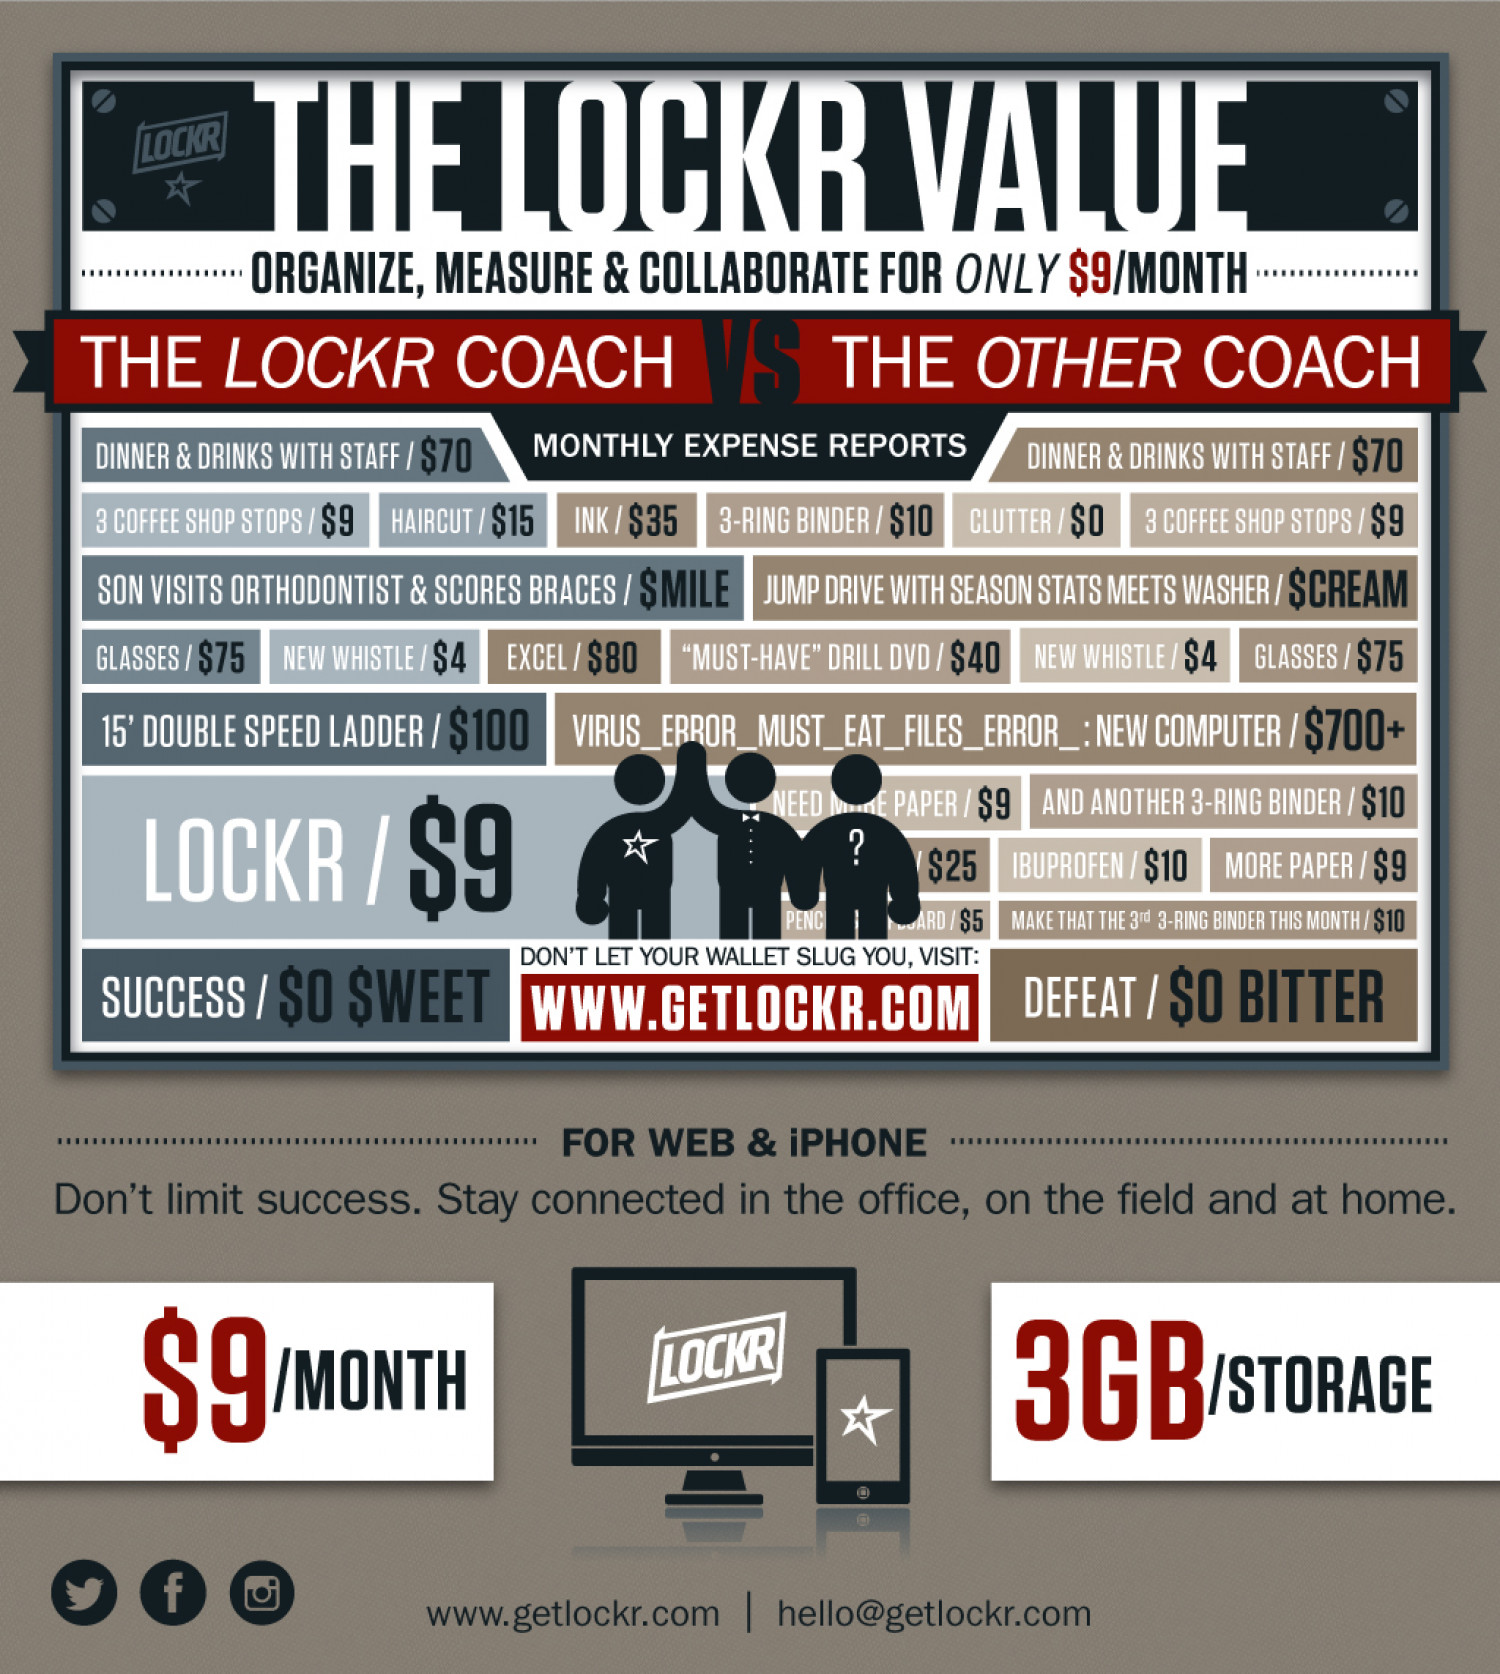 The Lockr Value Infographic